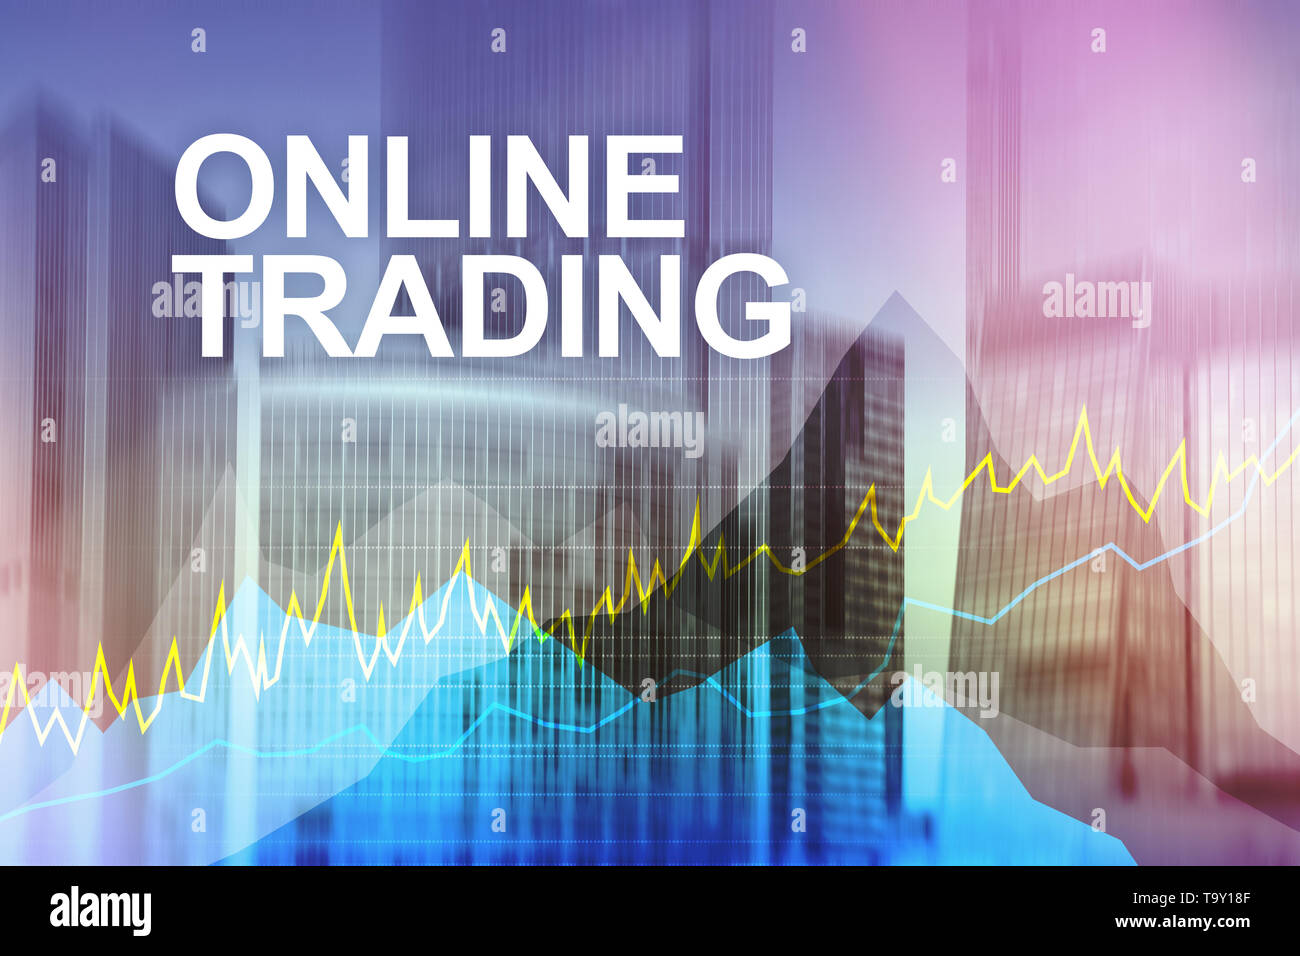 Online trading, Forex, Investment and financial market concept. - Stock Image